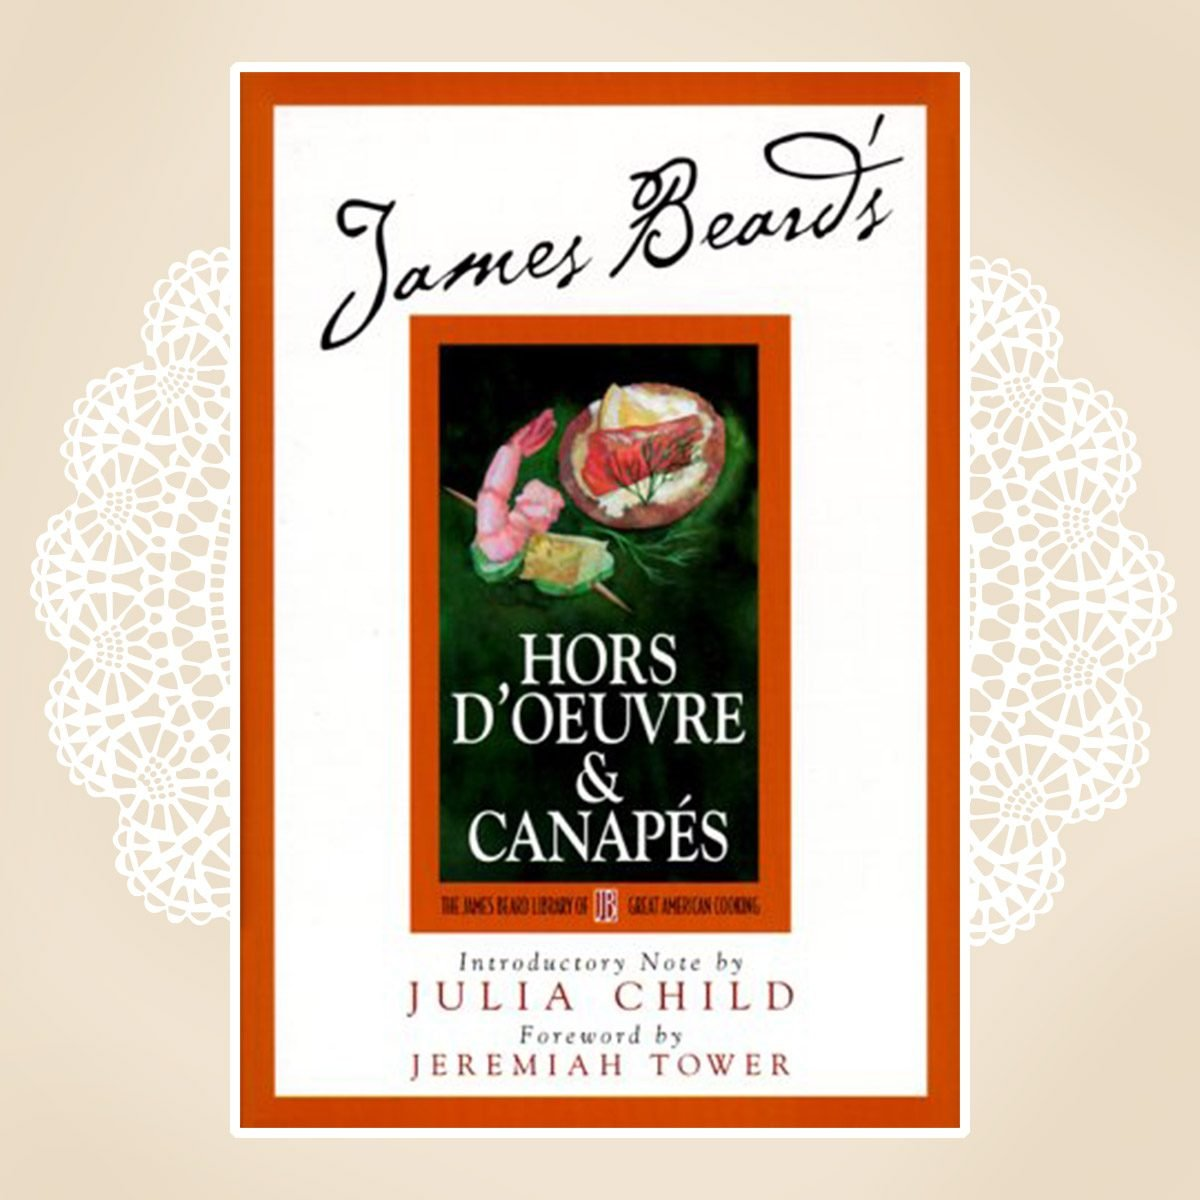 James Beard's Hors D'oeuvre & Canapes